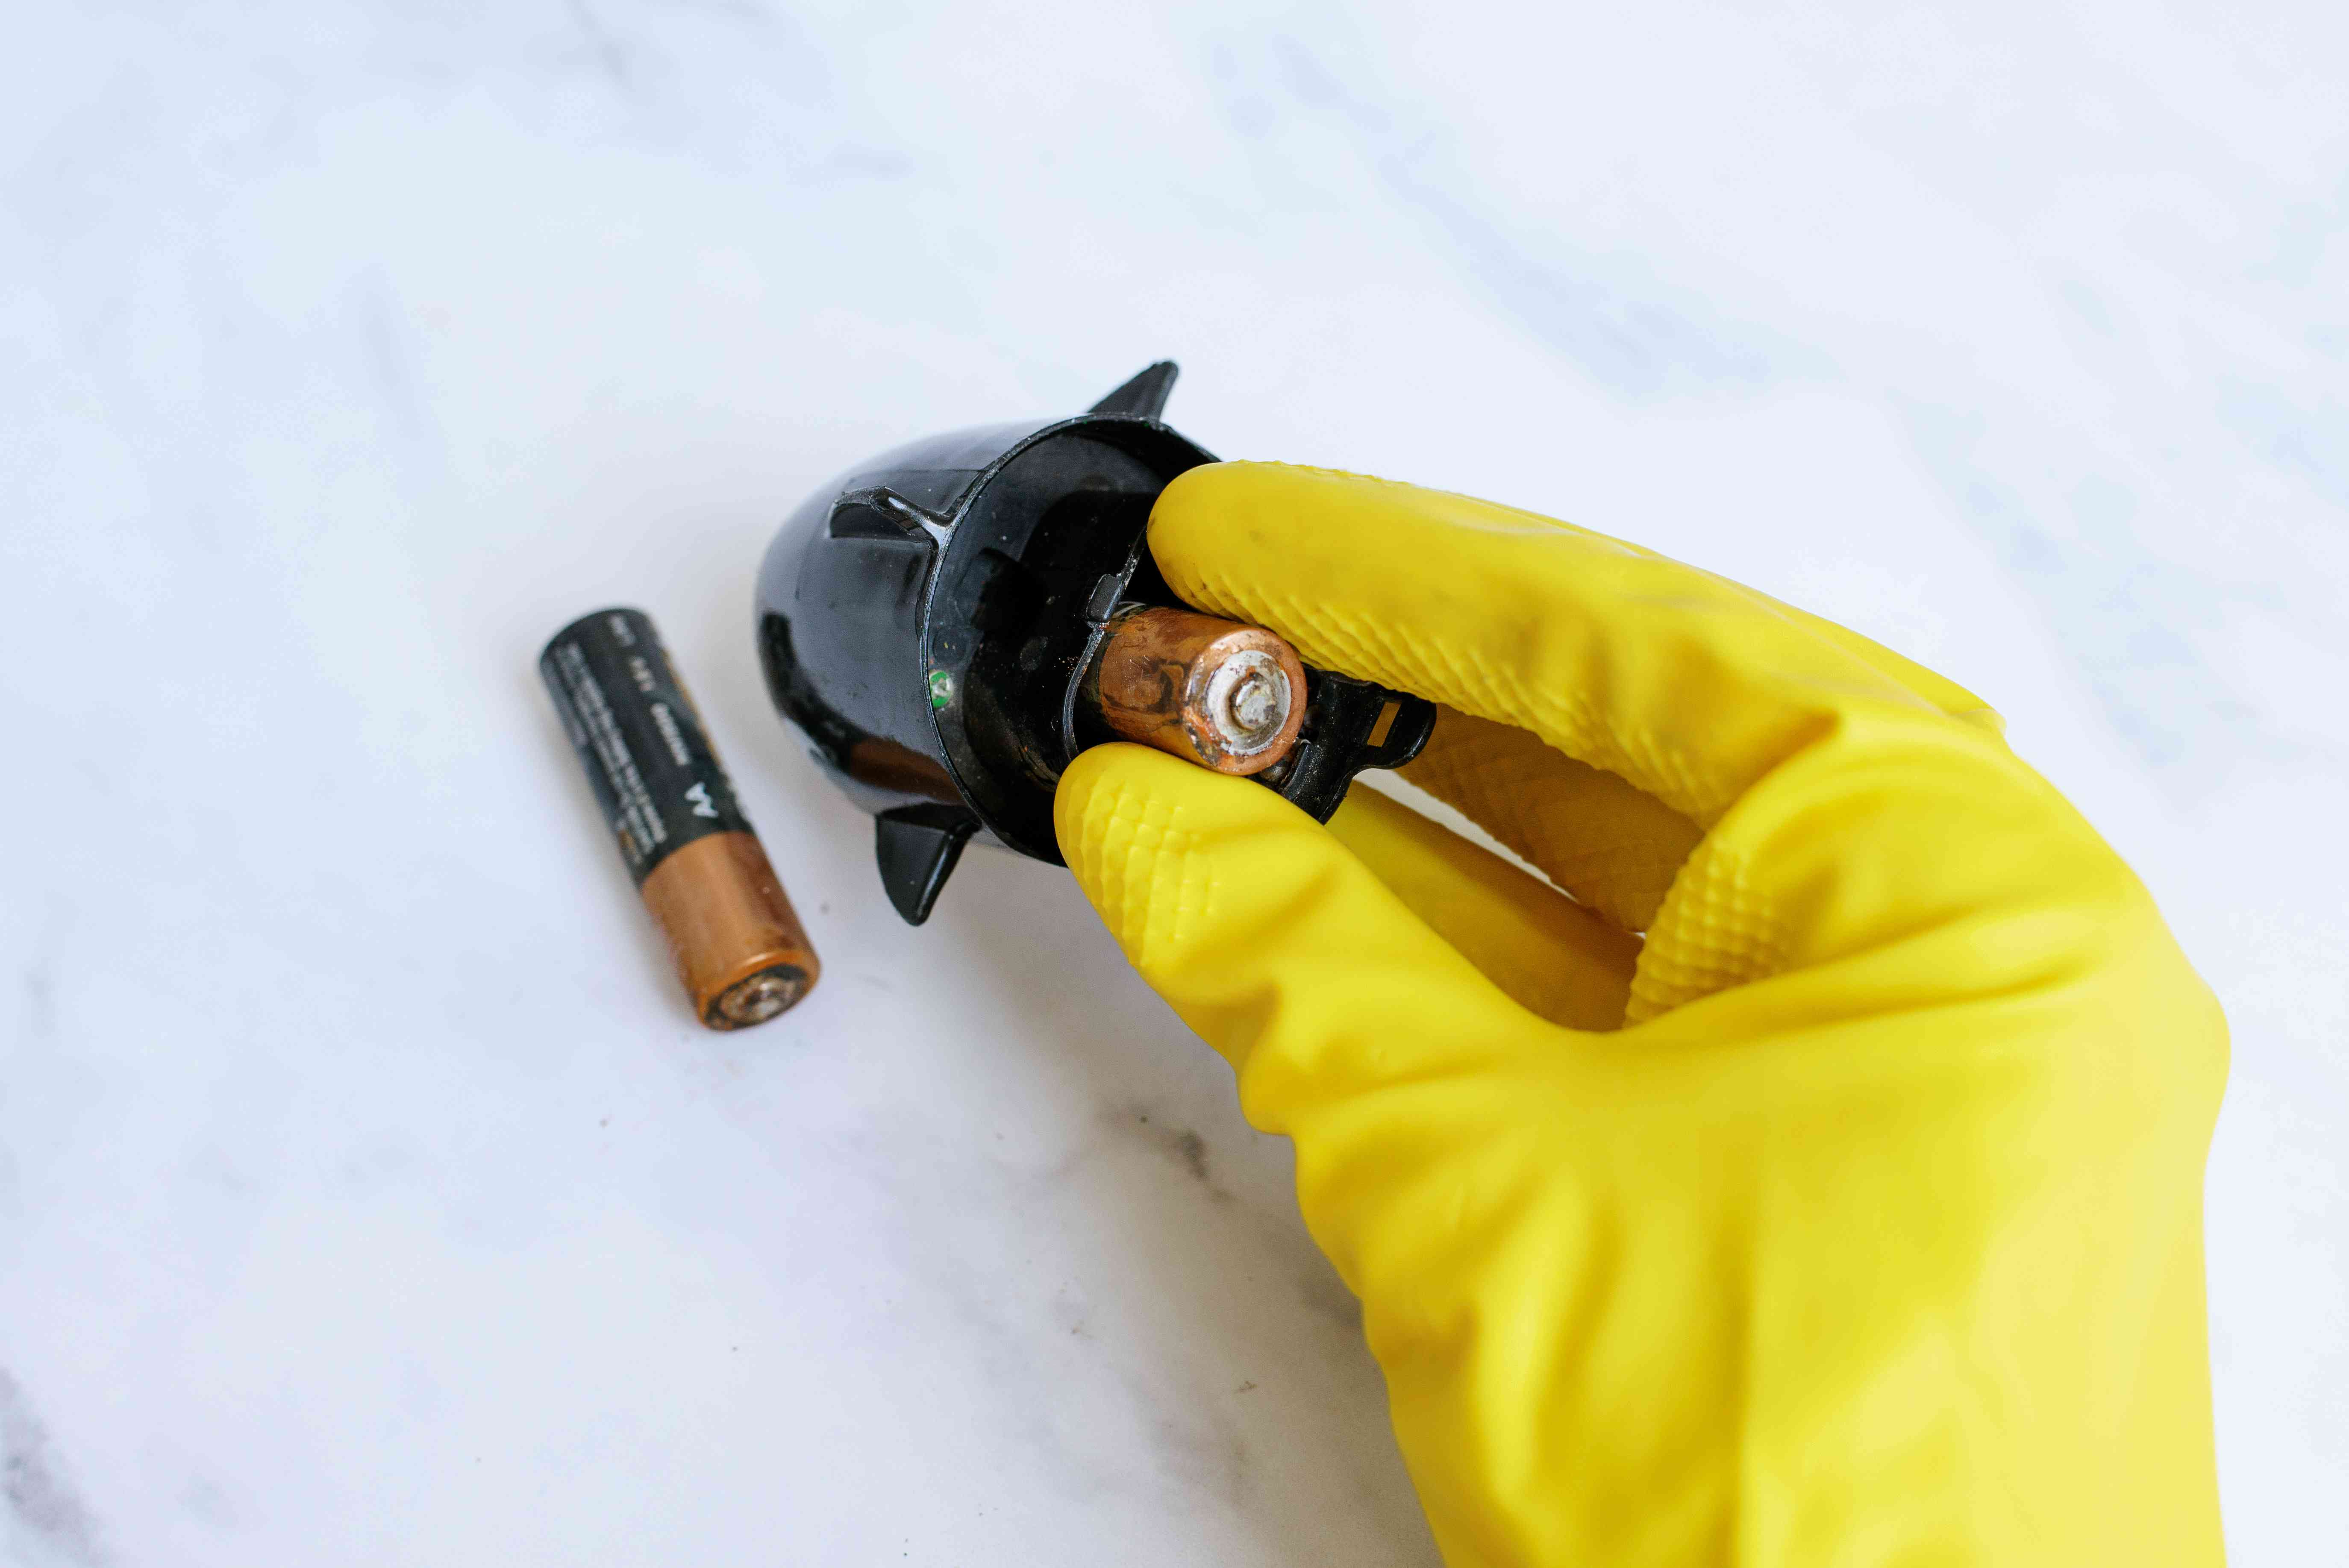 Batteries with corrosion removed from device with yellow gloves